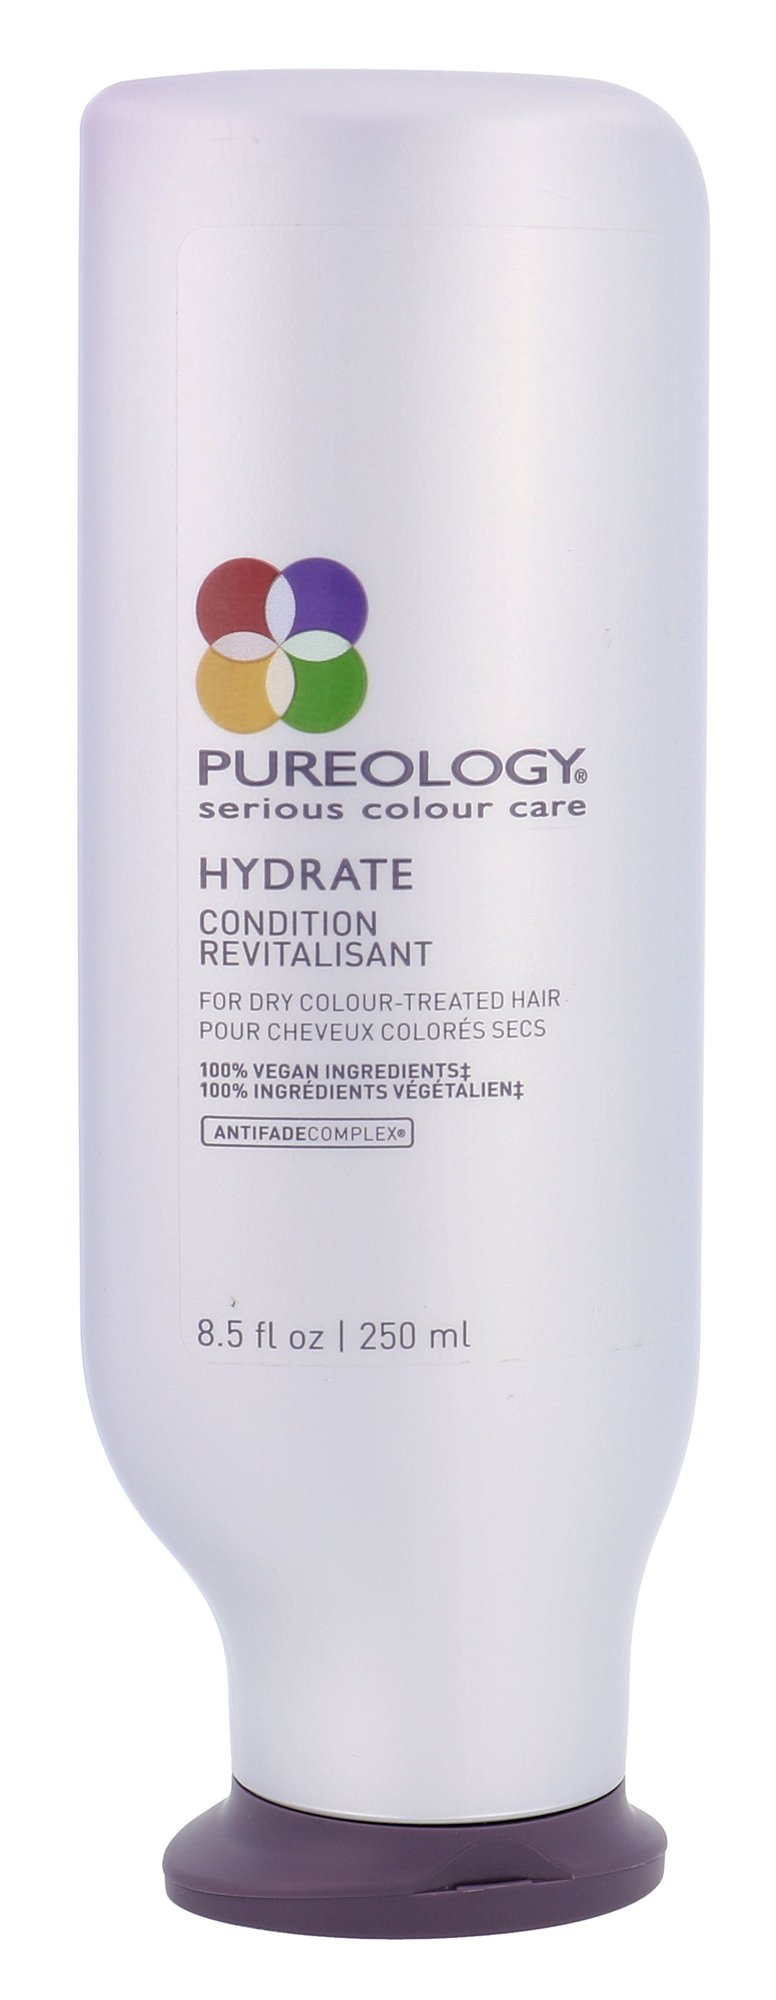 Redken Pureology Hydrate Cosmetic 250ml